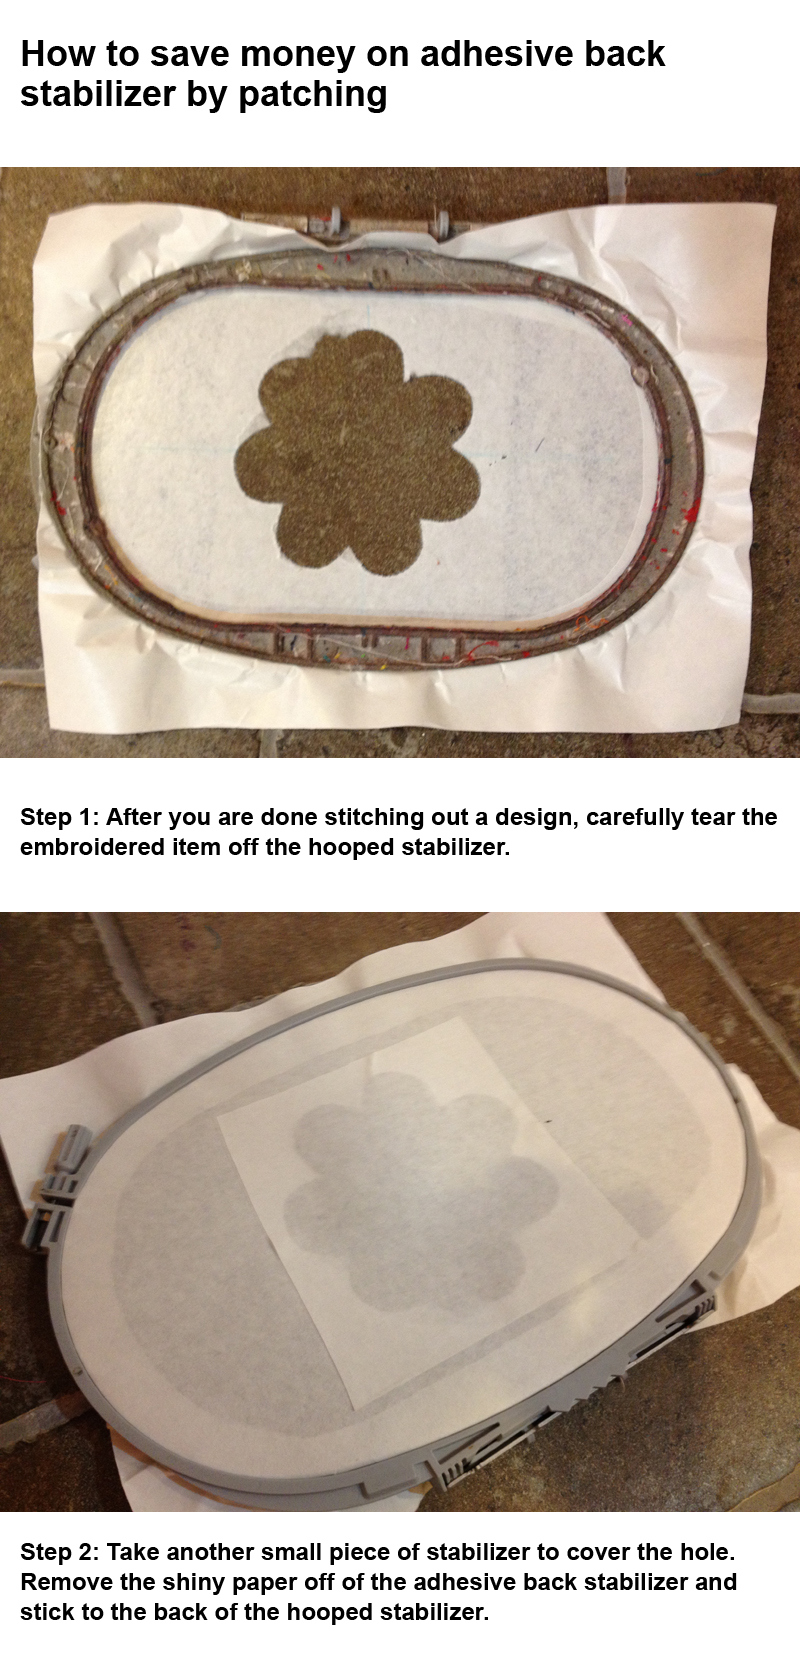 How to save money on embroidery stabilizer